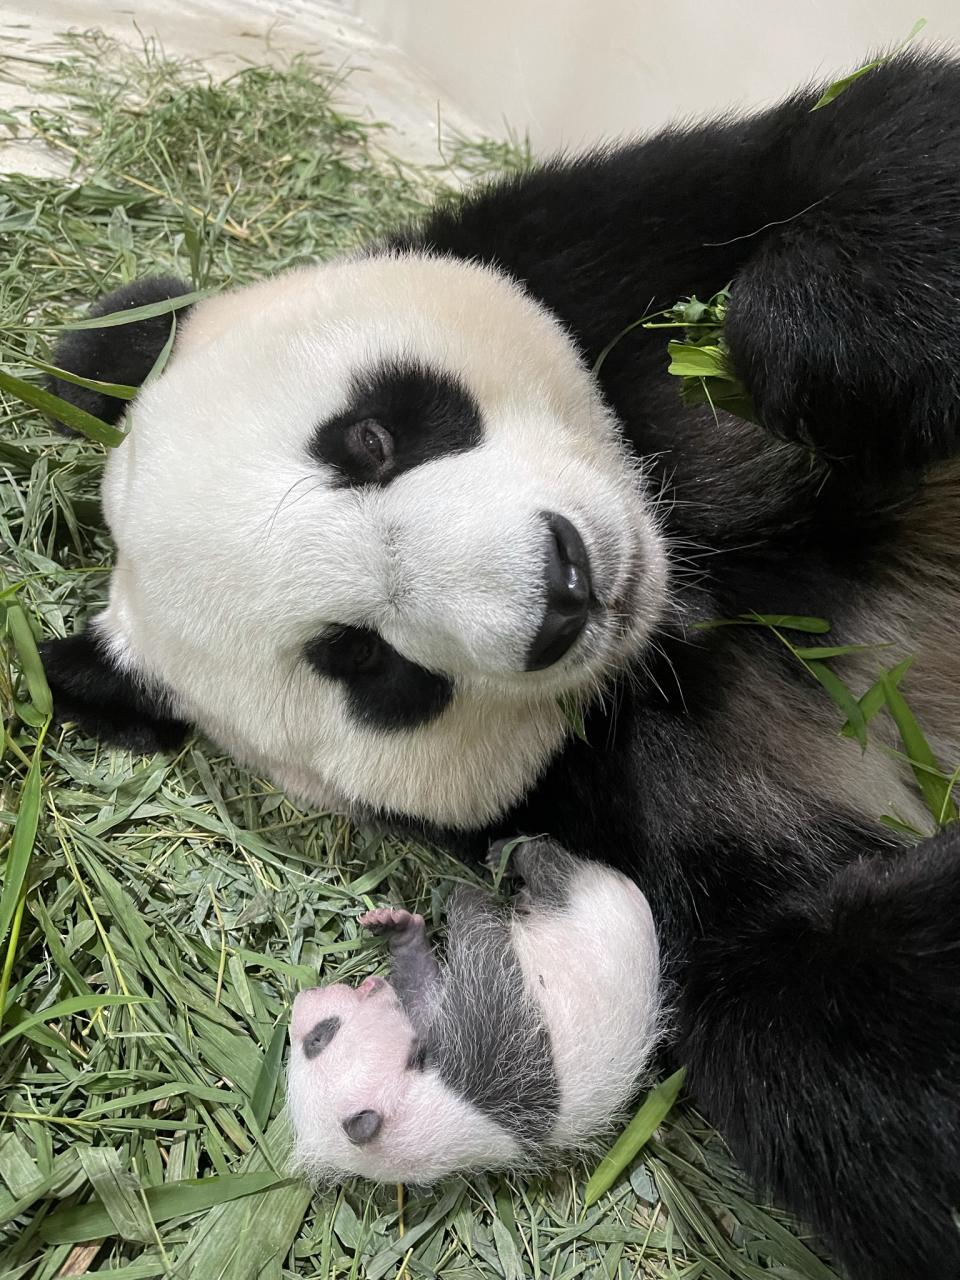 The male panda cub with mother Jia Jia at the River Safari in Singapore. (PHOTO: Wildlife Reserves Singapore)